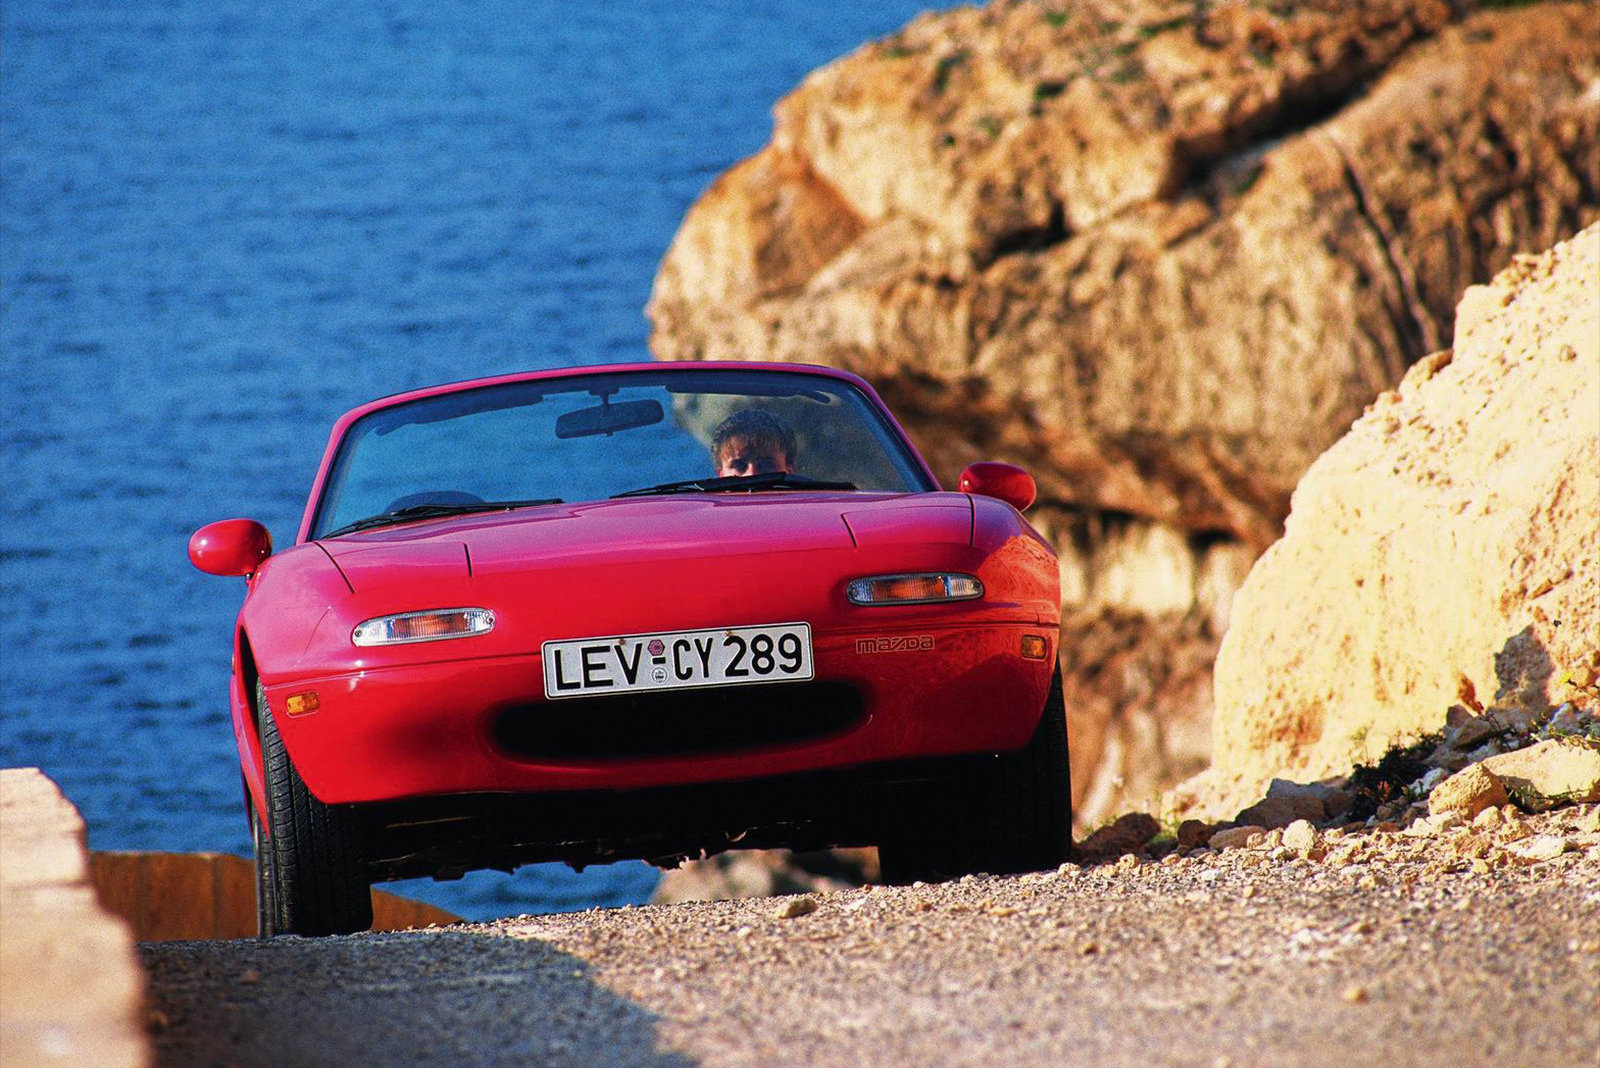 1990 Mazda MX-5 Miata red cliff